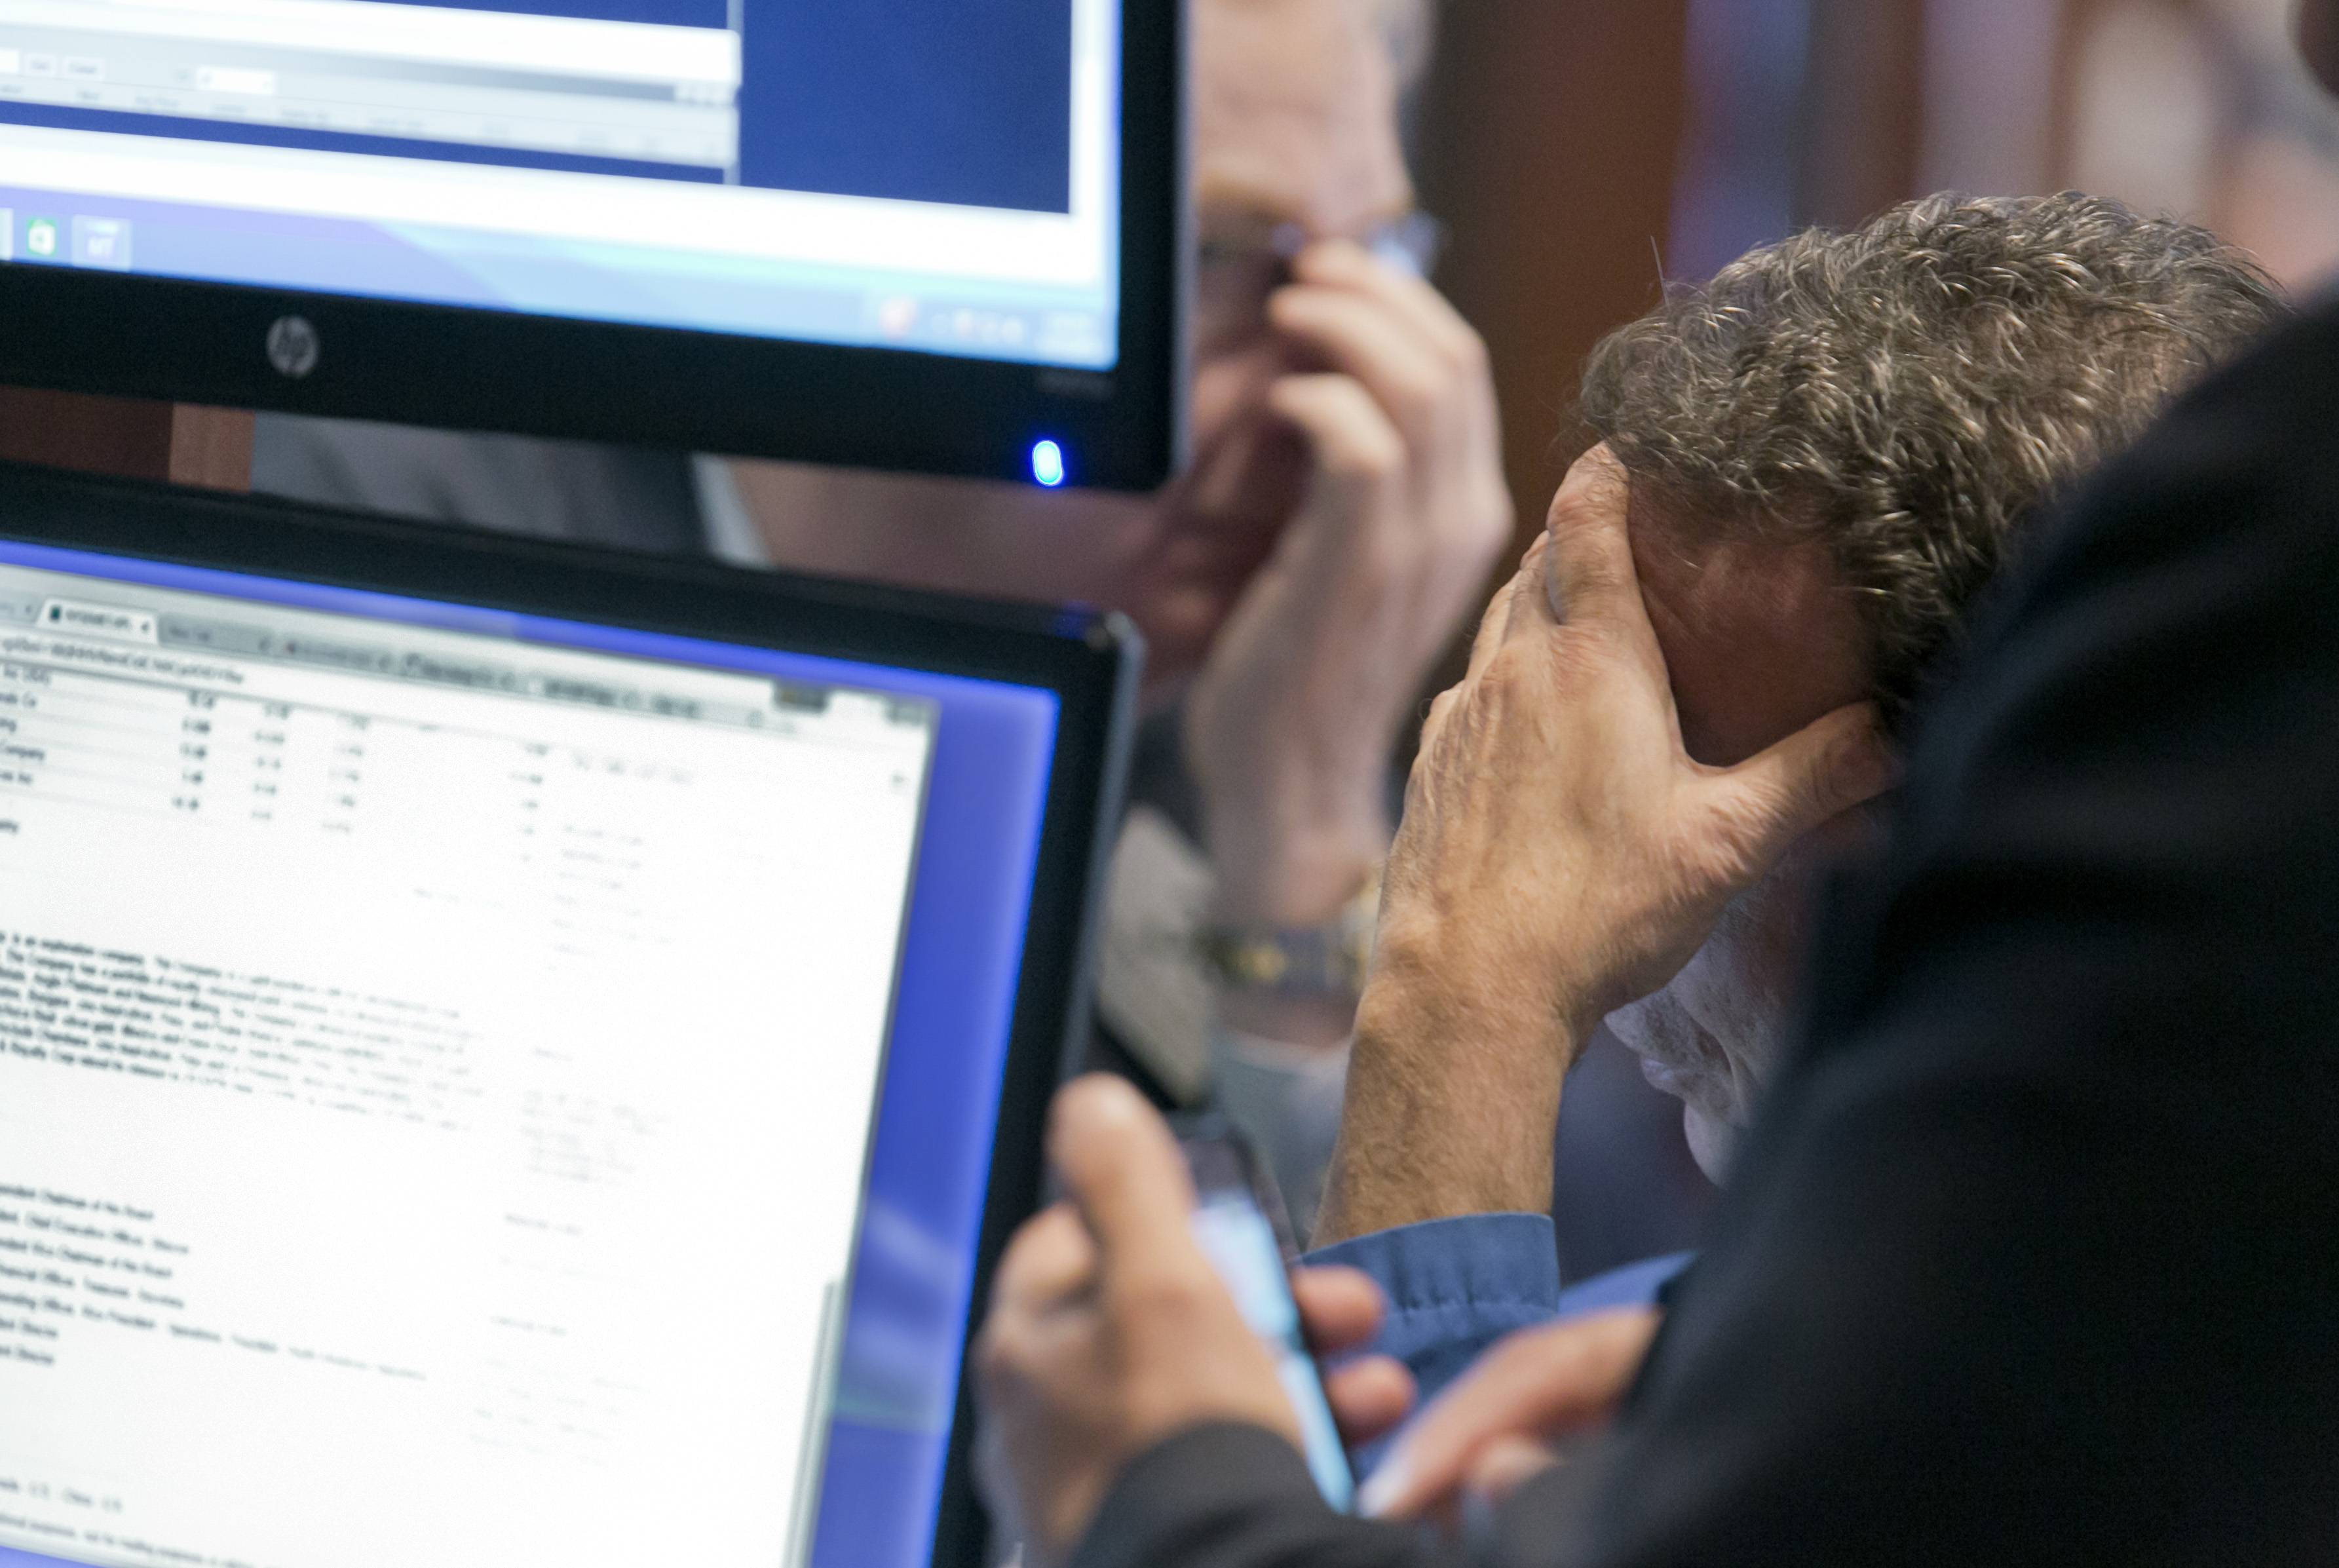 Traders work Tuesday on the floor of the New York Stock Exchange. U.S. stocks were weighed down by disappointing forecasts. Even companies that boasted strong quarterly results, such as American Airlines Group, which recorded record quarterly profit, also delivered cautionary notes.